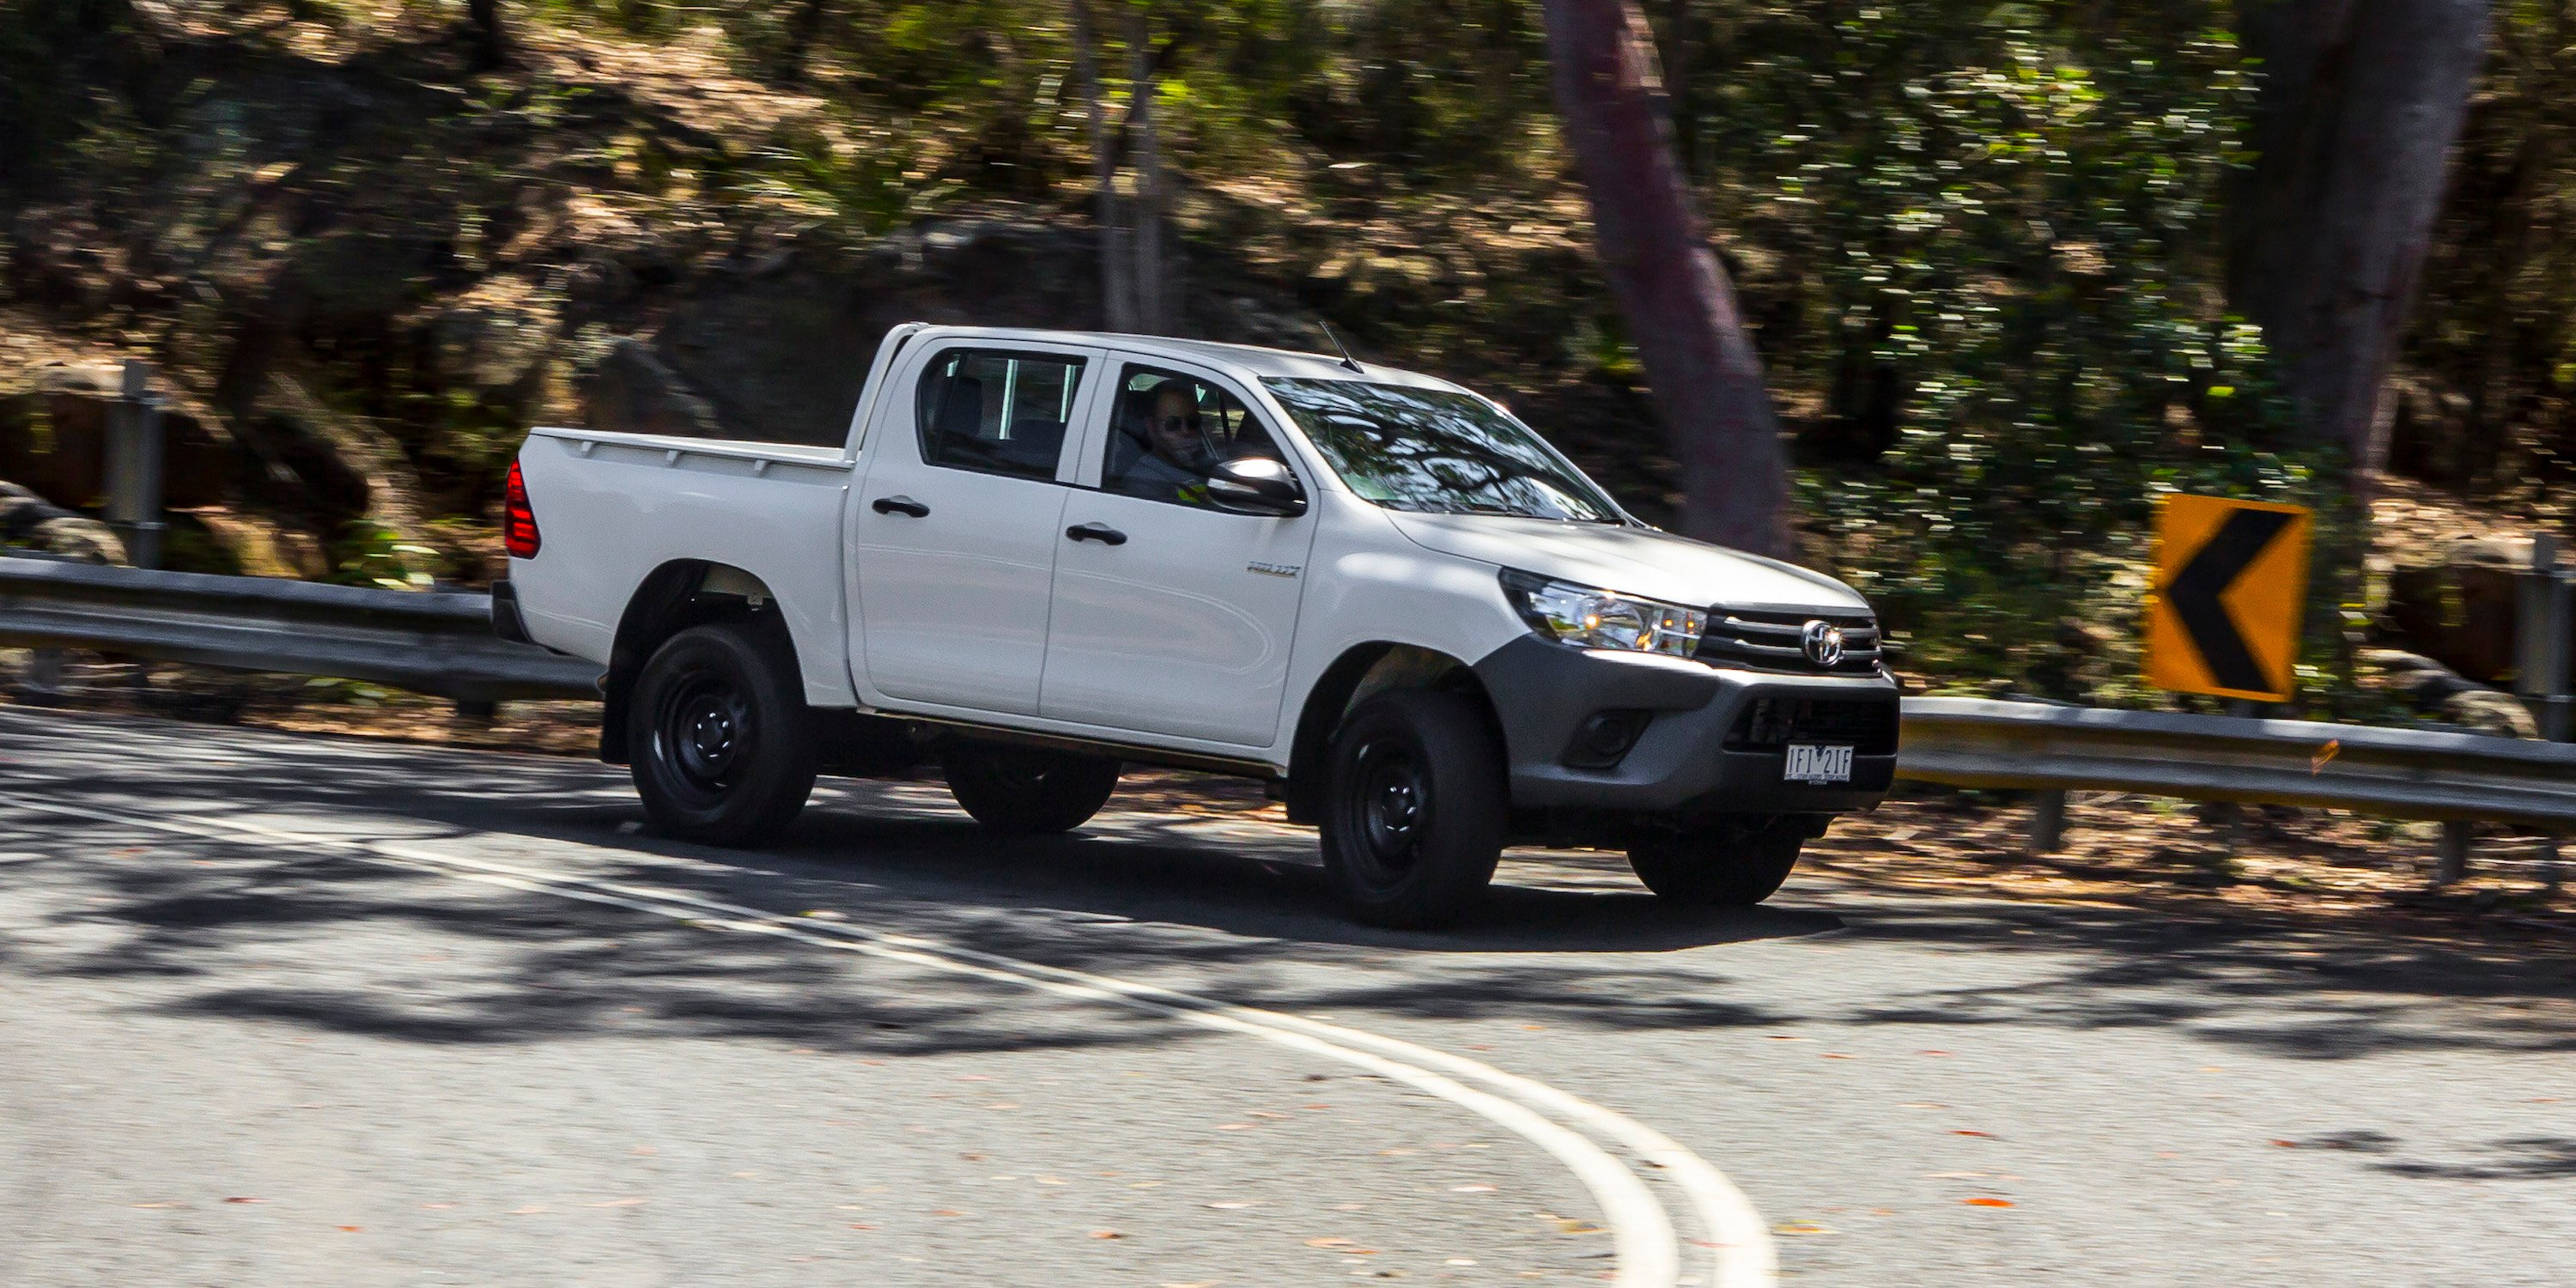 2016 Toyota HiLux WorkMate 4x4 Review - Photos